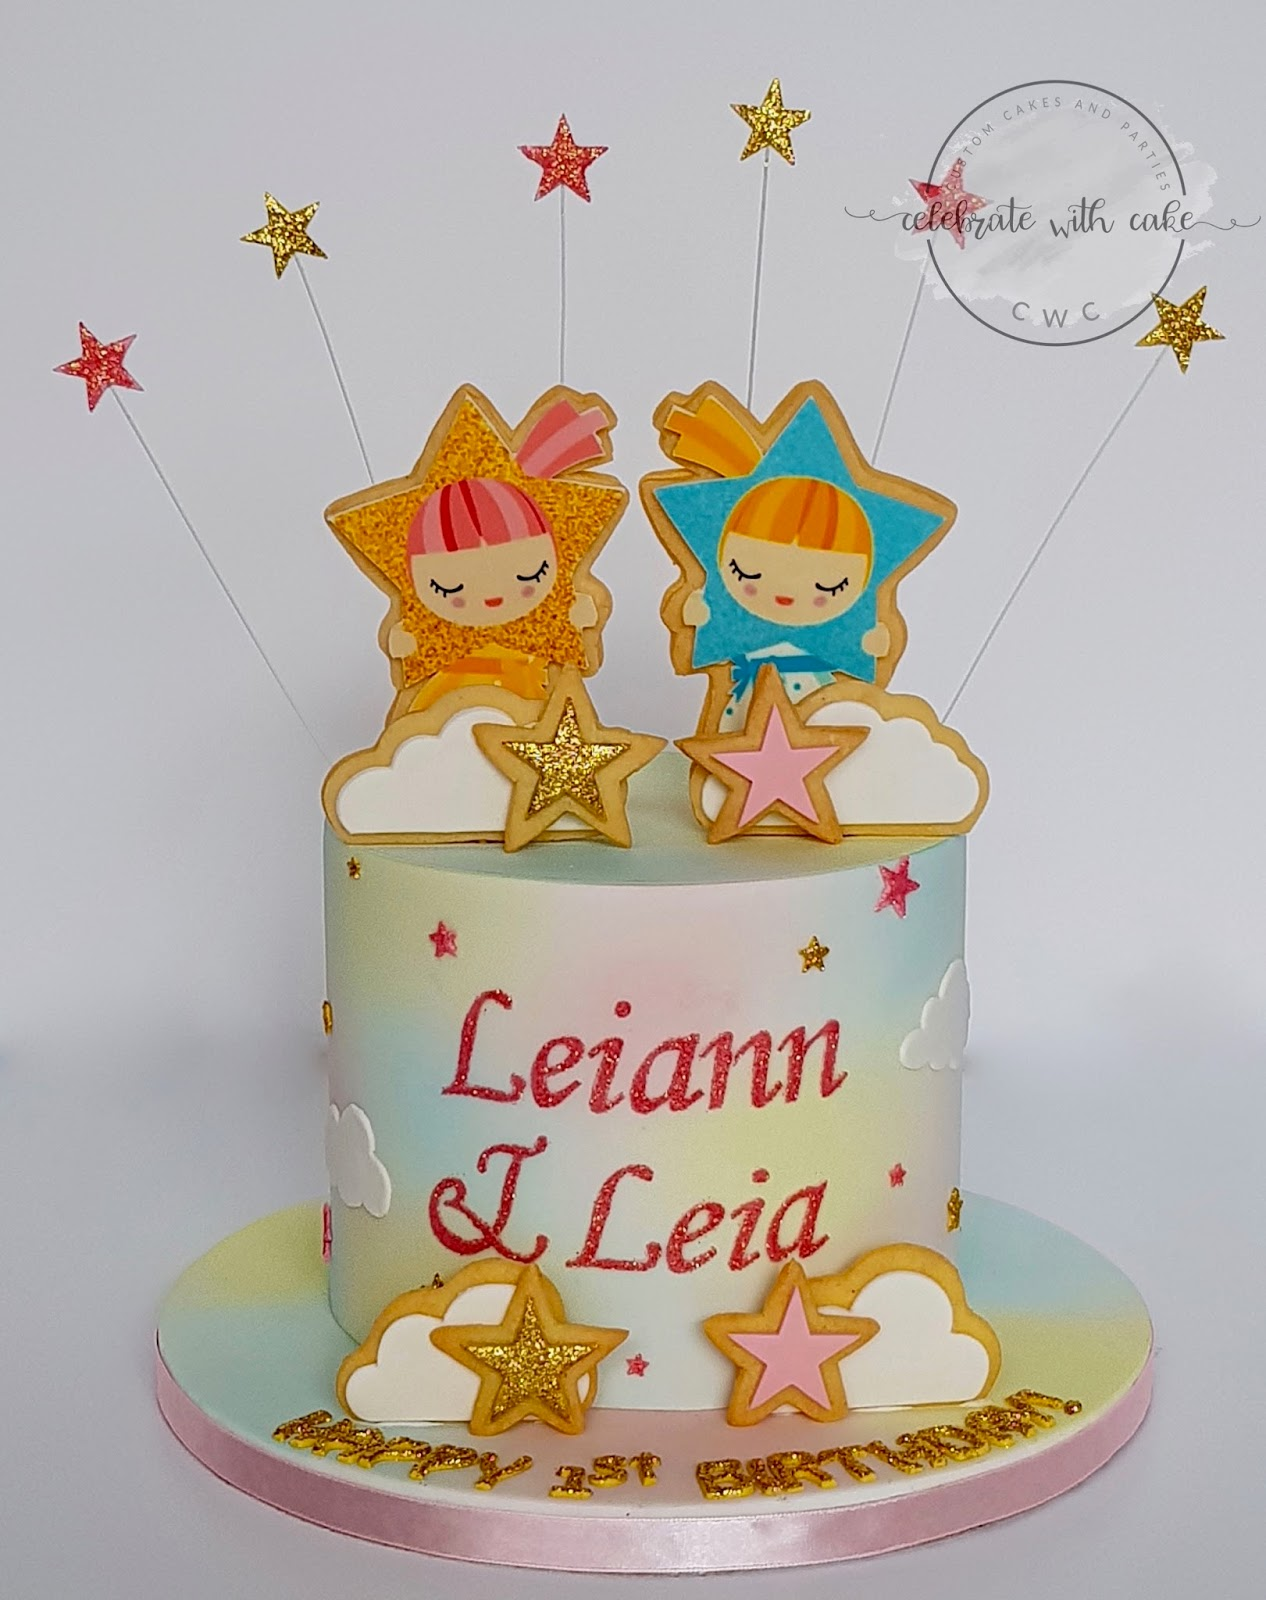 Celebrate With Cake Twinkle Twinkle Little Stars With Cookies